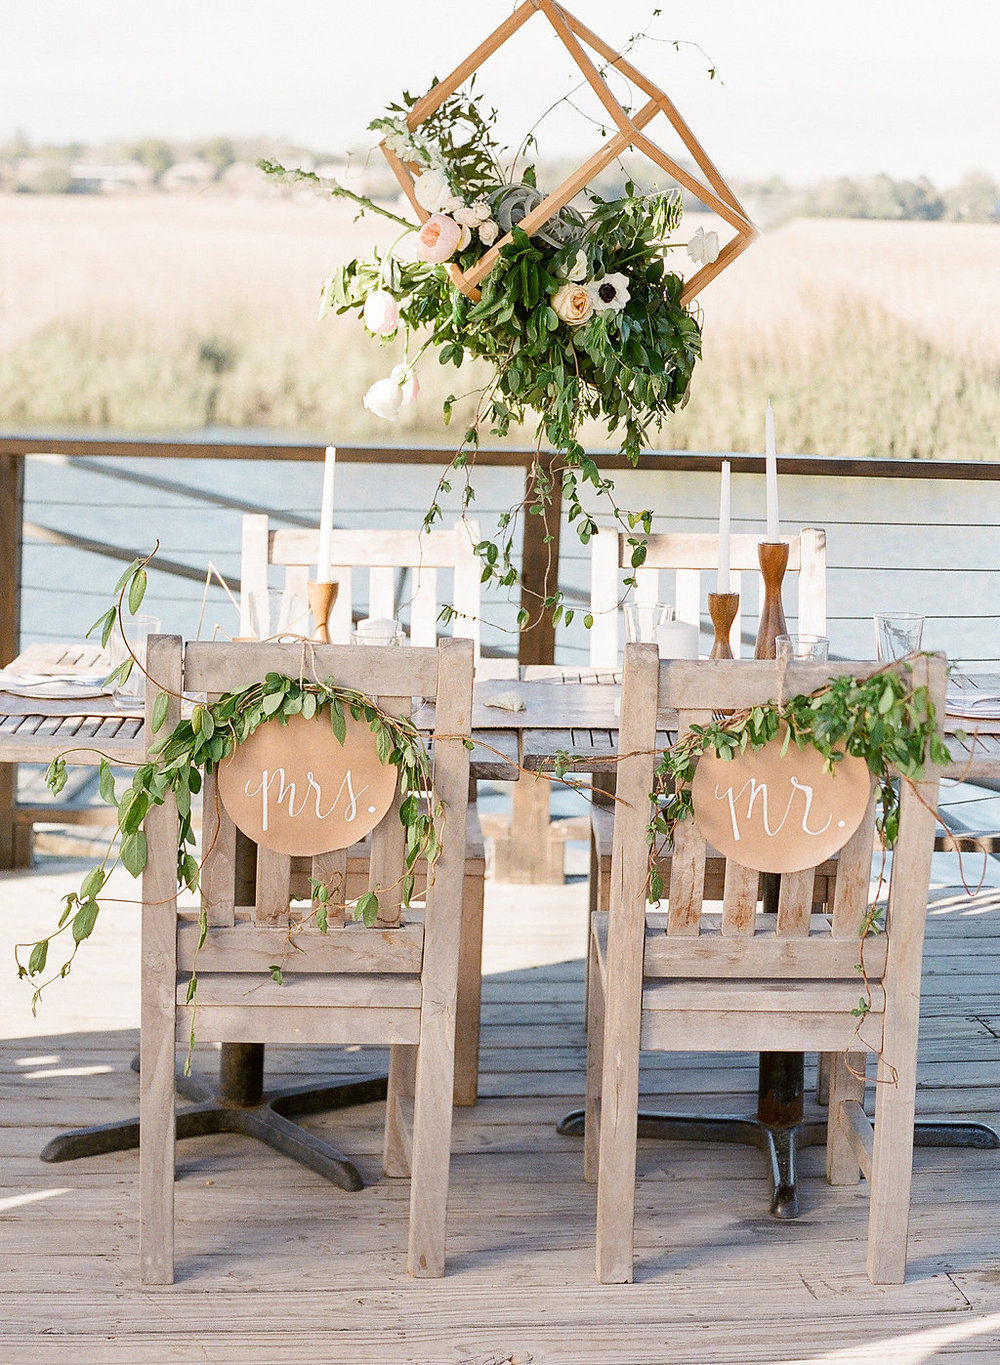 sweetheart-chairs-sweetheart-chair-leather-calligrapy-signs-ivory-and-beau-savannah-wedding-planner-hanging-centerpiece-savannah-wedding-florist-the-wyld-dock-bar-leather-wedding-inspiration-the-happy-bloom.jpg